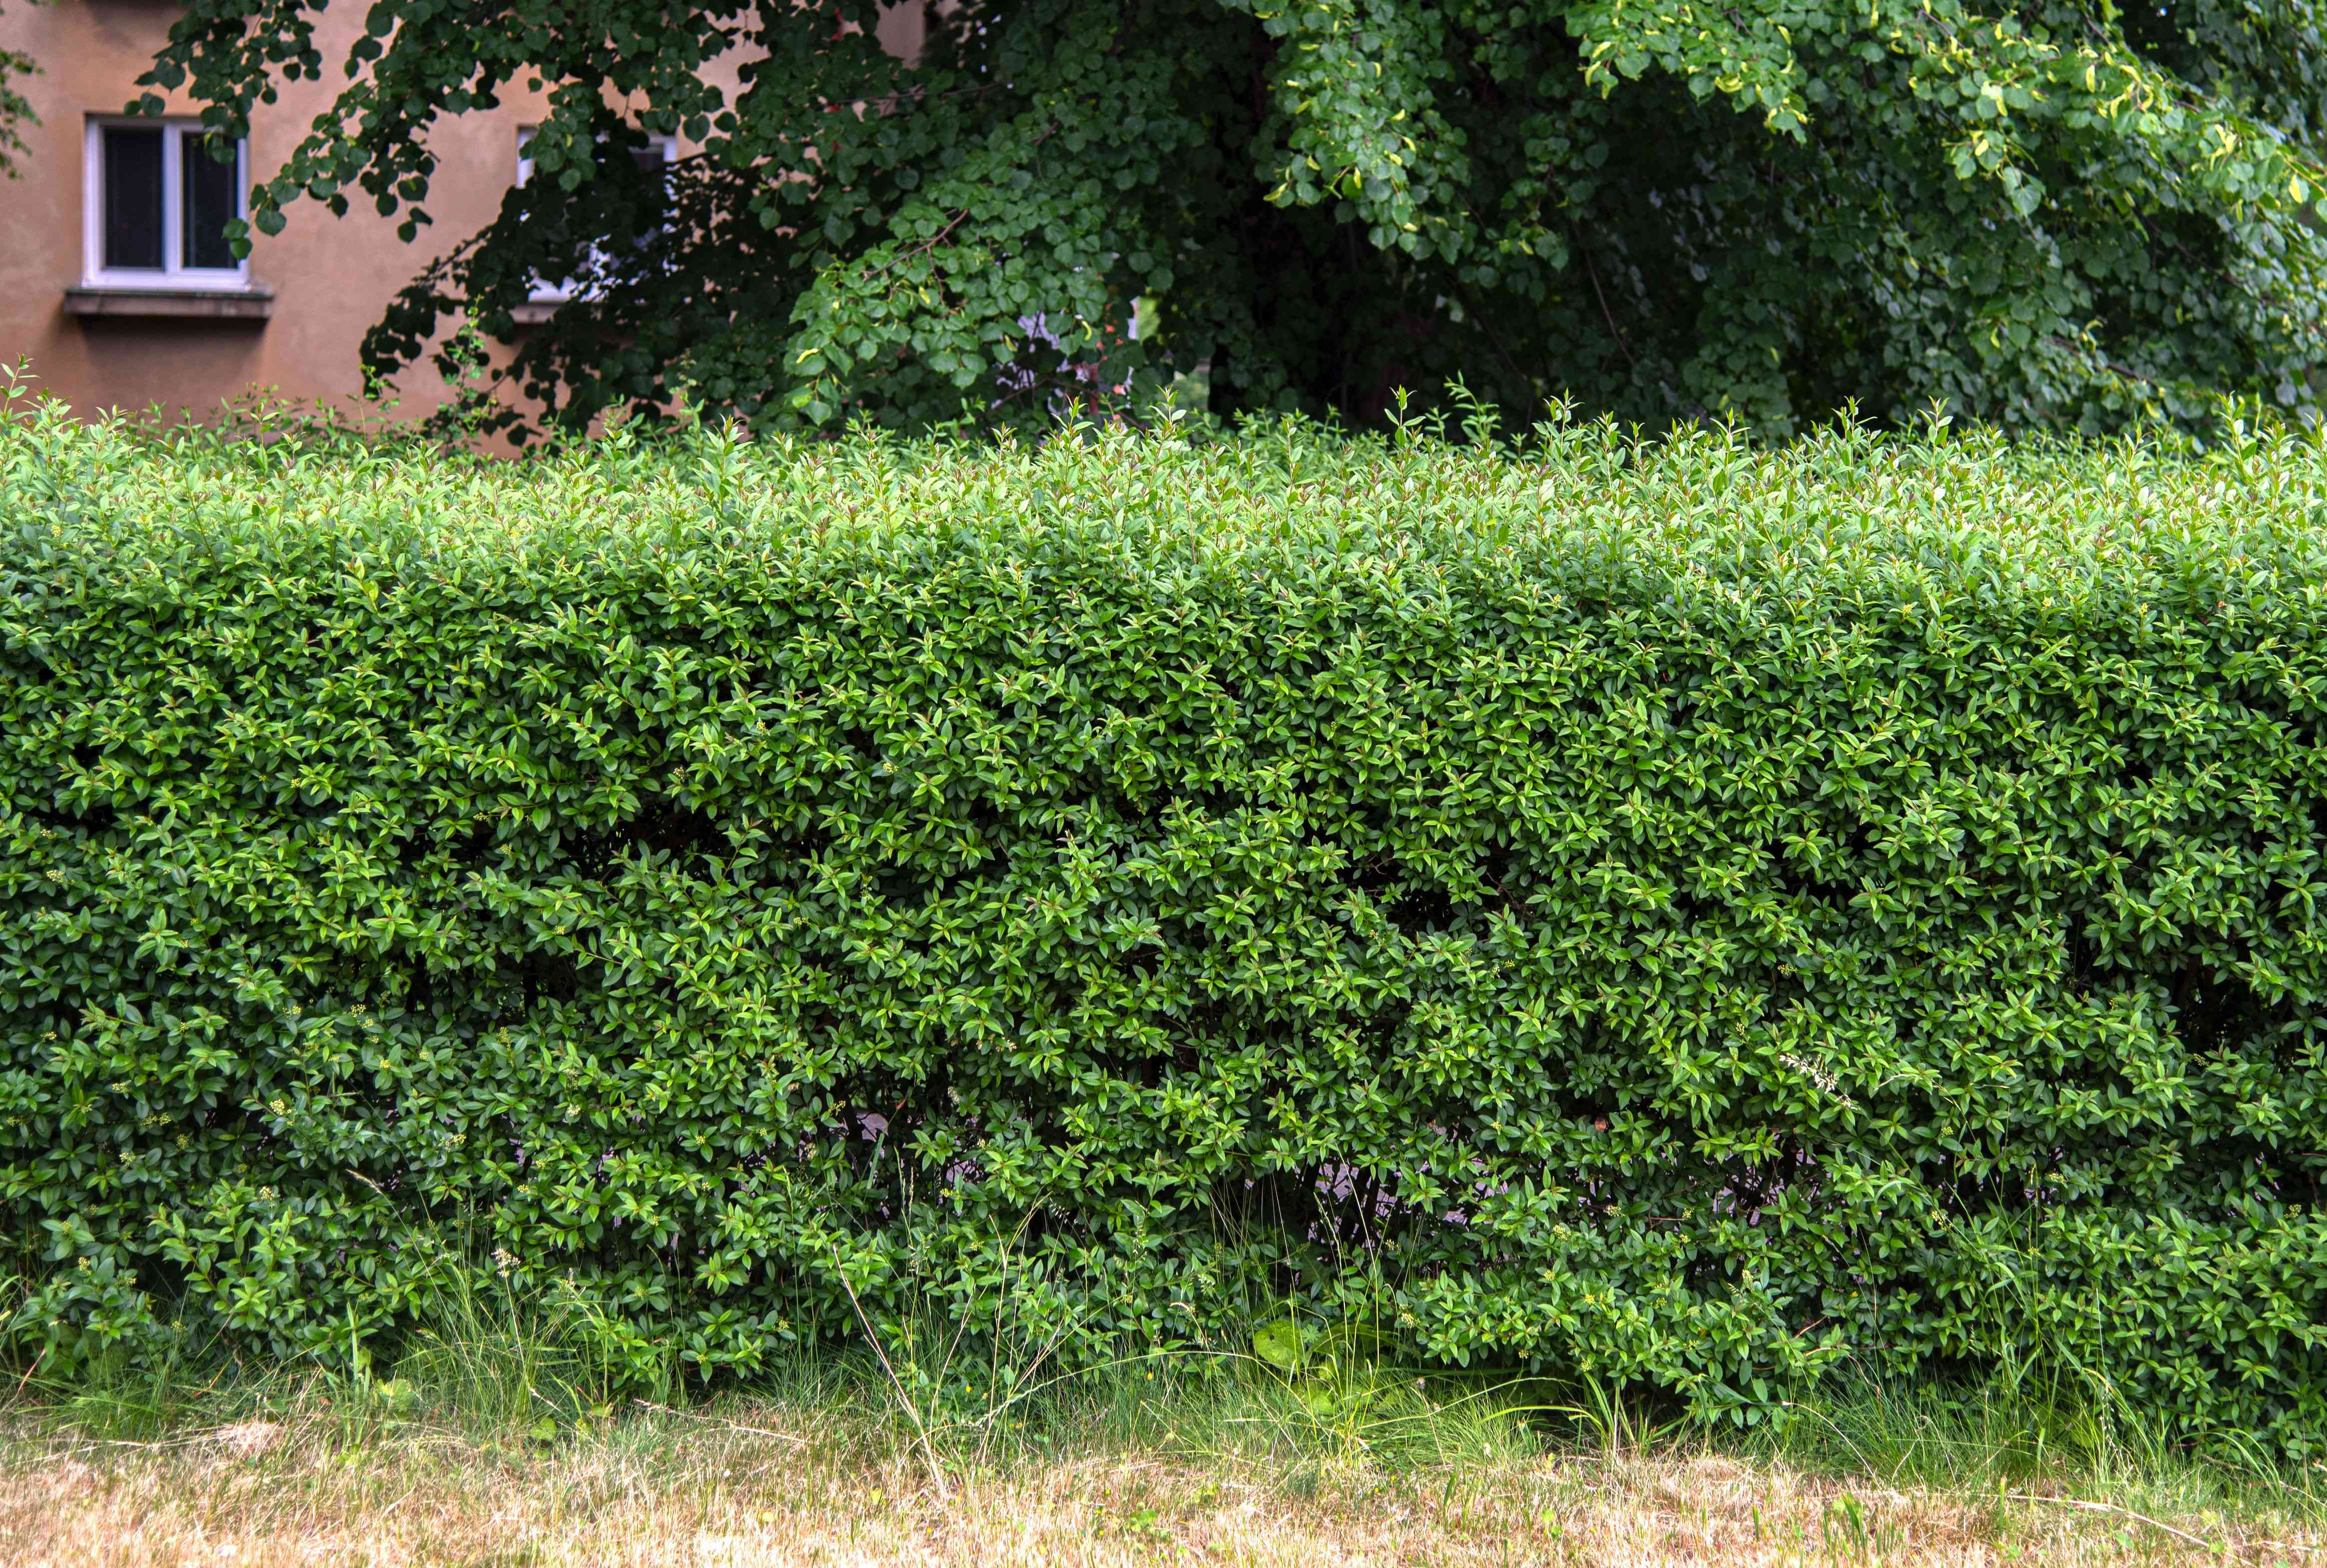 Privet hedge with small green leaves clumped together and trimmed in a box-like form